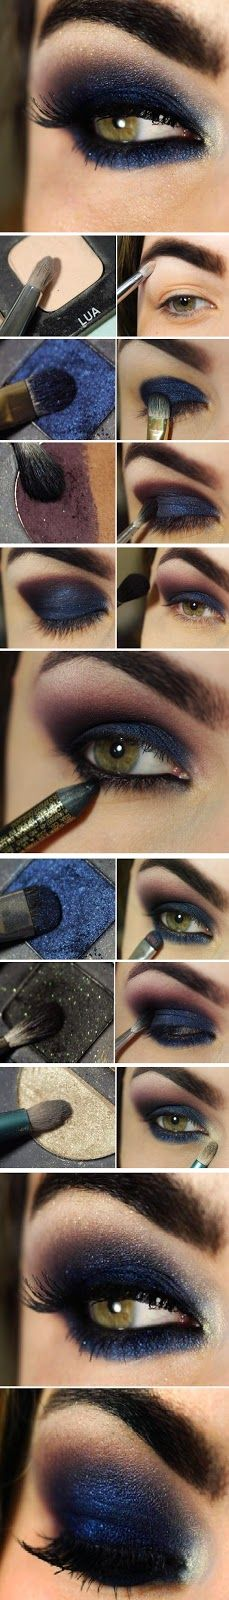 Get this beautiful sexy chic makeup idea starring navy blue! It's a perfect look even if you use cat eye glasses: http://www.smartbuyglasses.com/designer-eyeglasses/general/--Cat+Eye---------------------